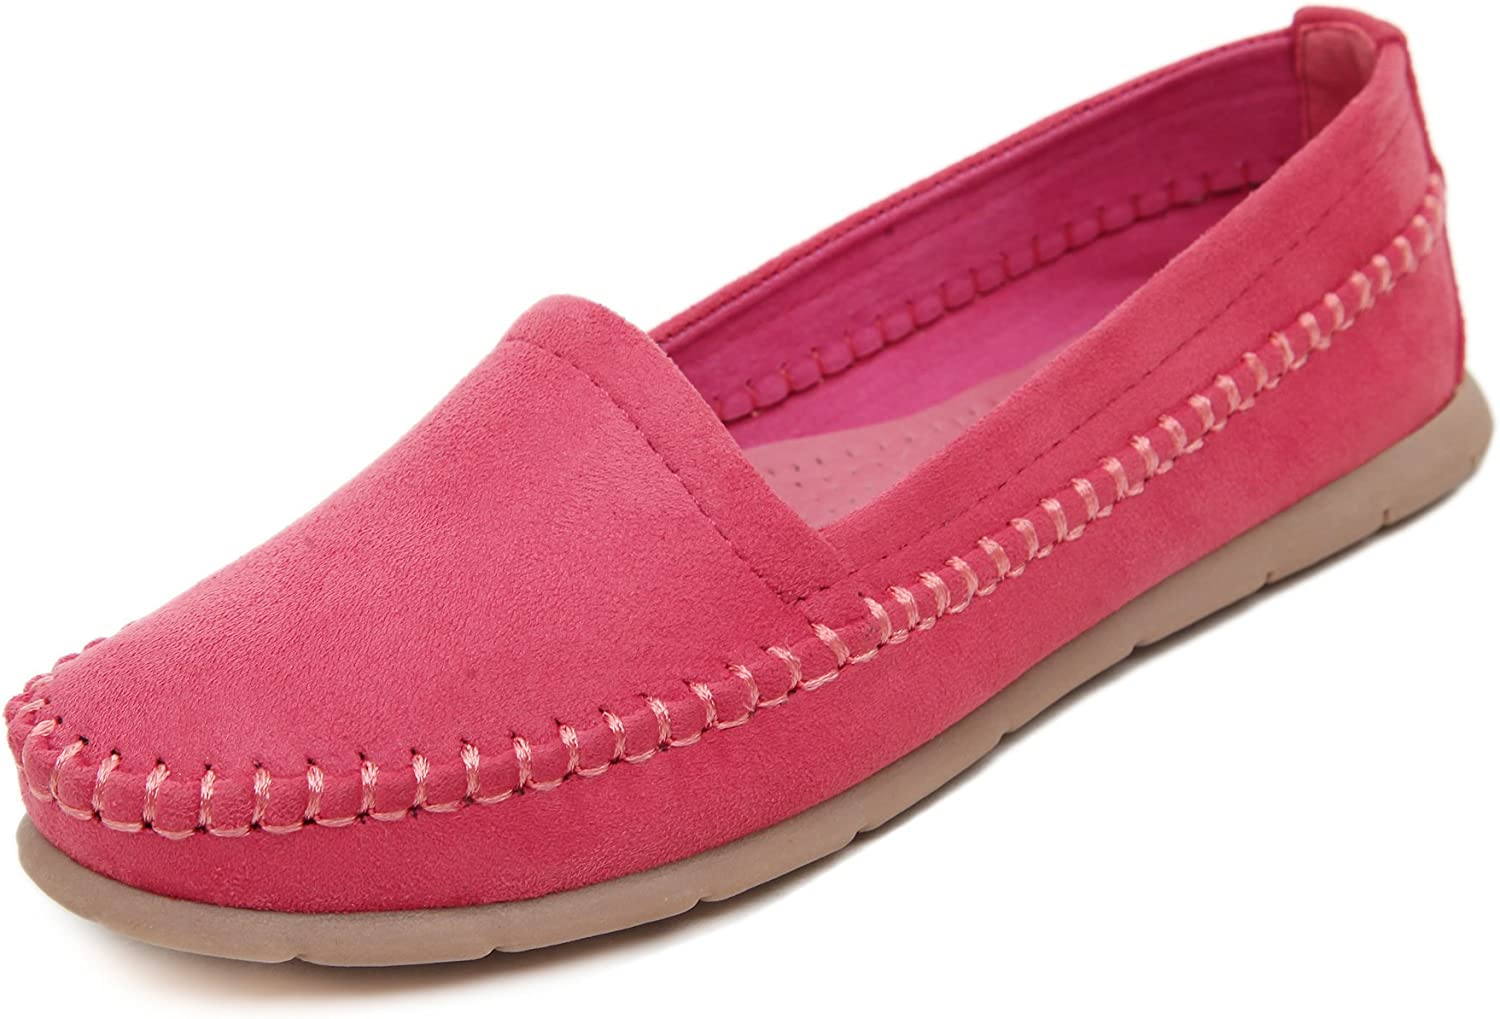 Adelina Women's Classical Solid Boat Loafer shoes Driving Moccasin Red 40 EU   8.5-9 US